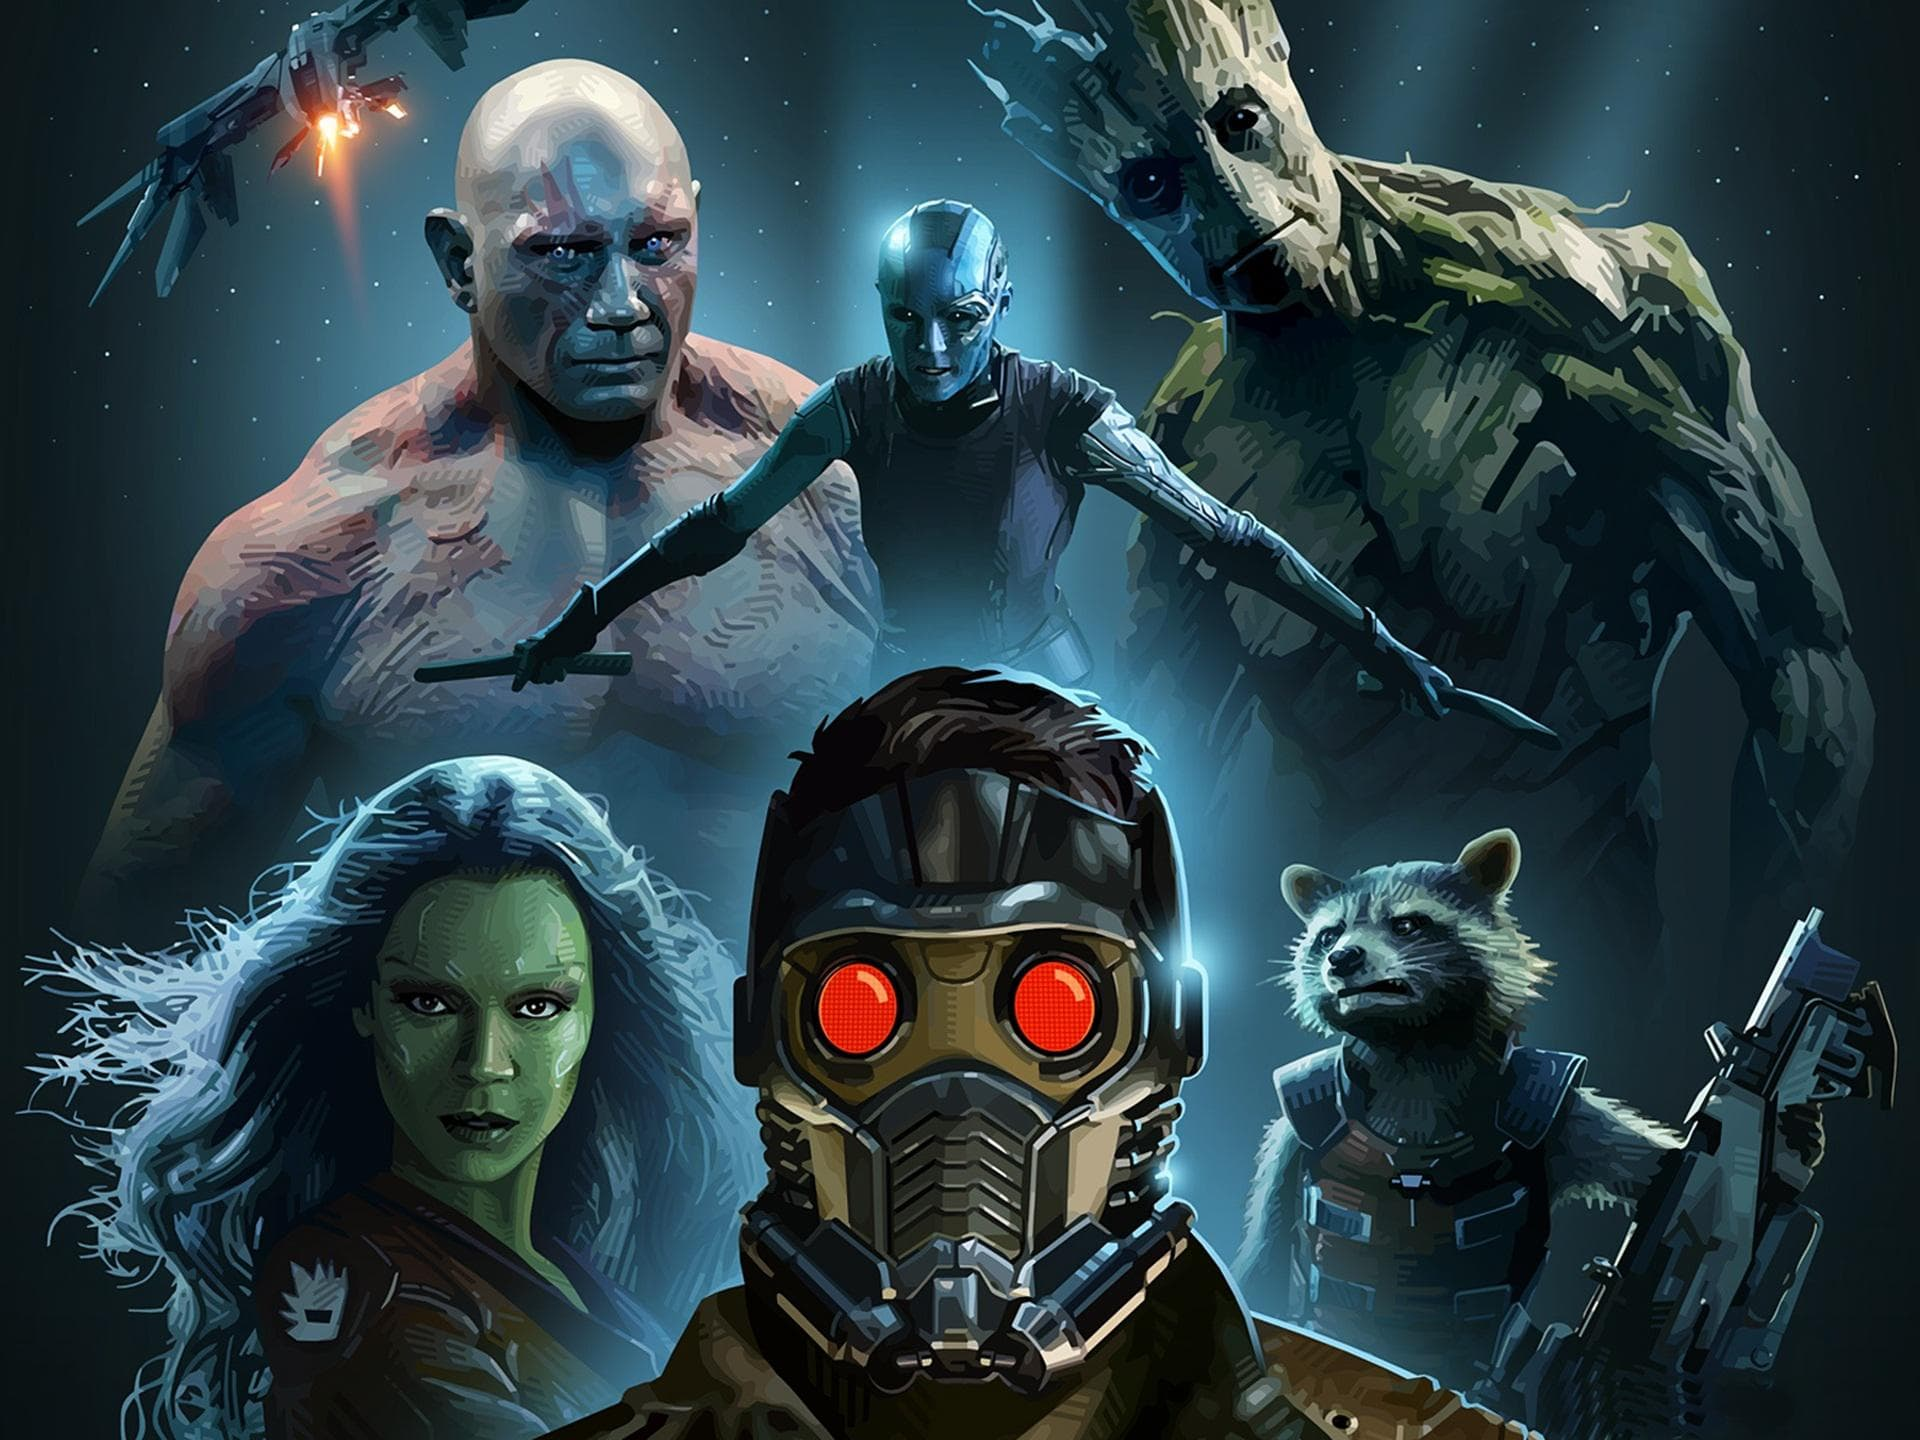 Free Download Guardians Of The Galaxy Hd Desktop Wallpapers